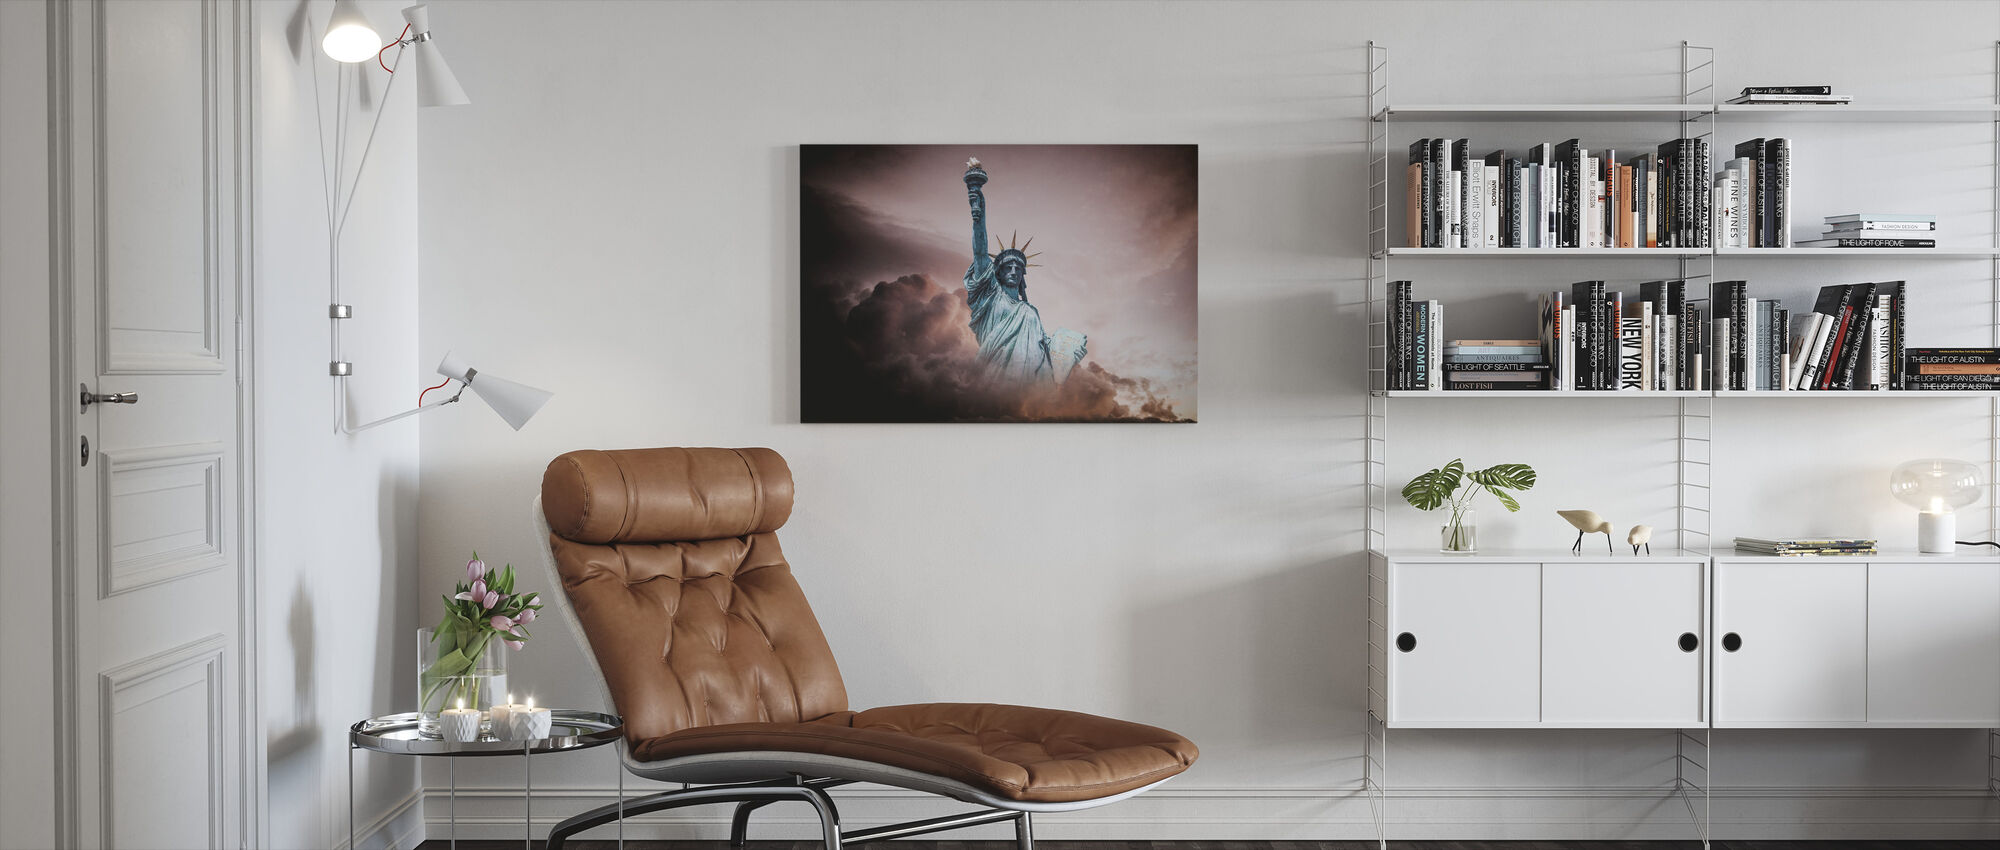 Statue of Liberty in Clouds - Canvas print - Living Room